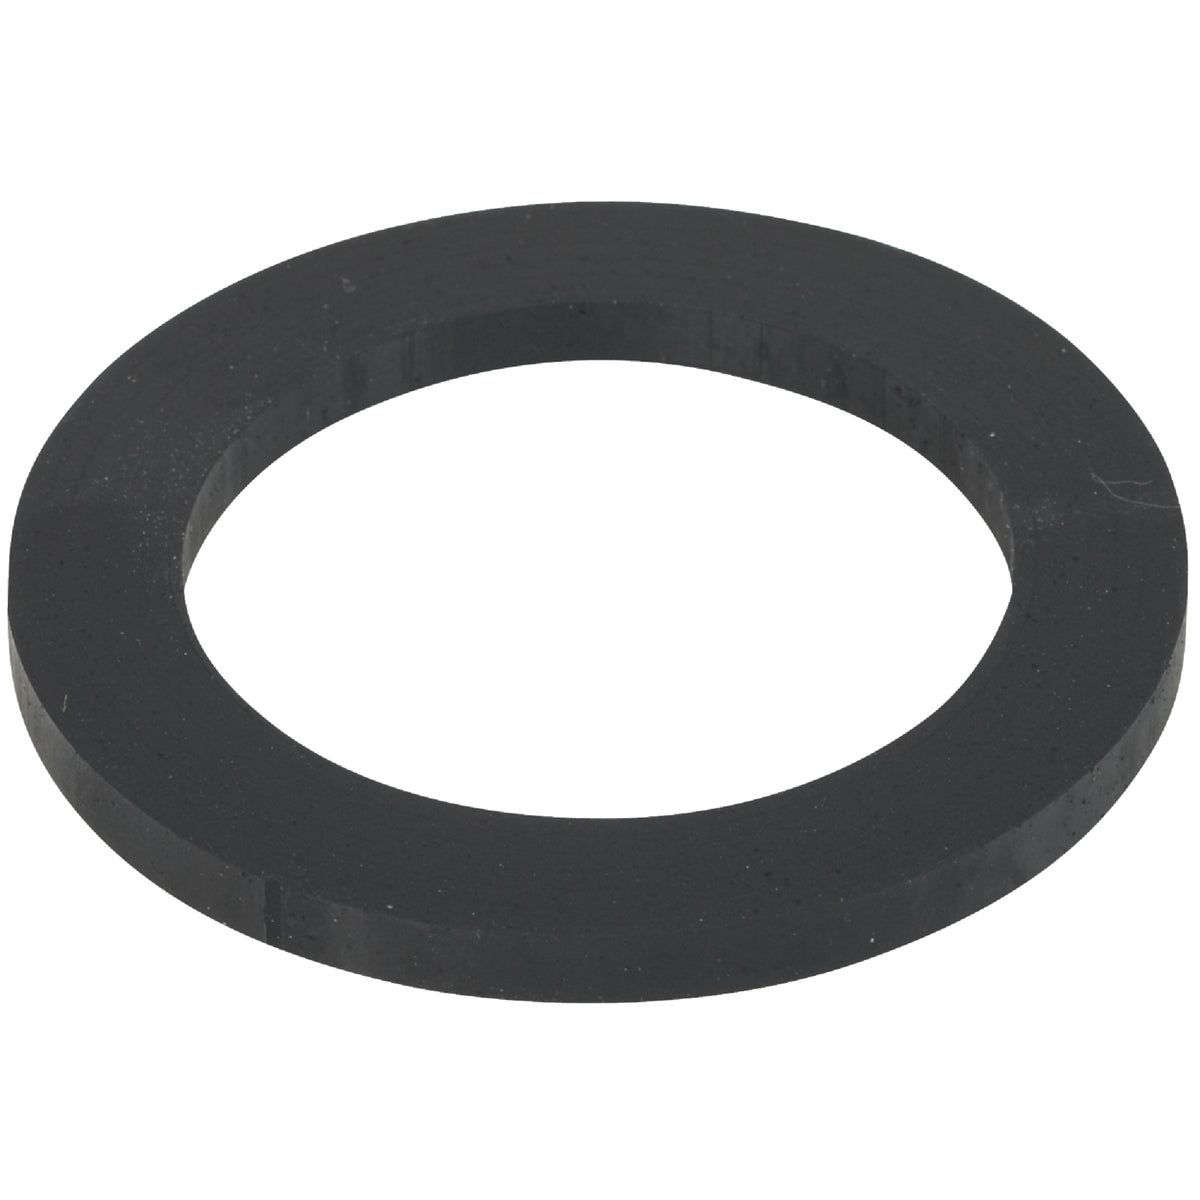 BATH DRAIN GASKET - 406317 by Do it Best